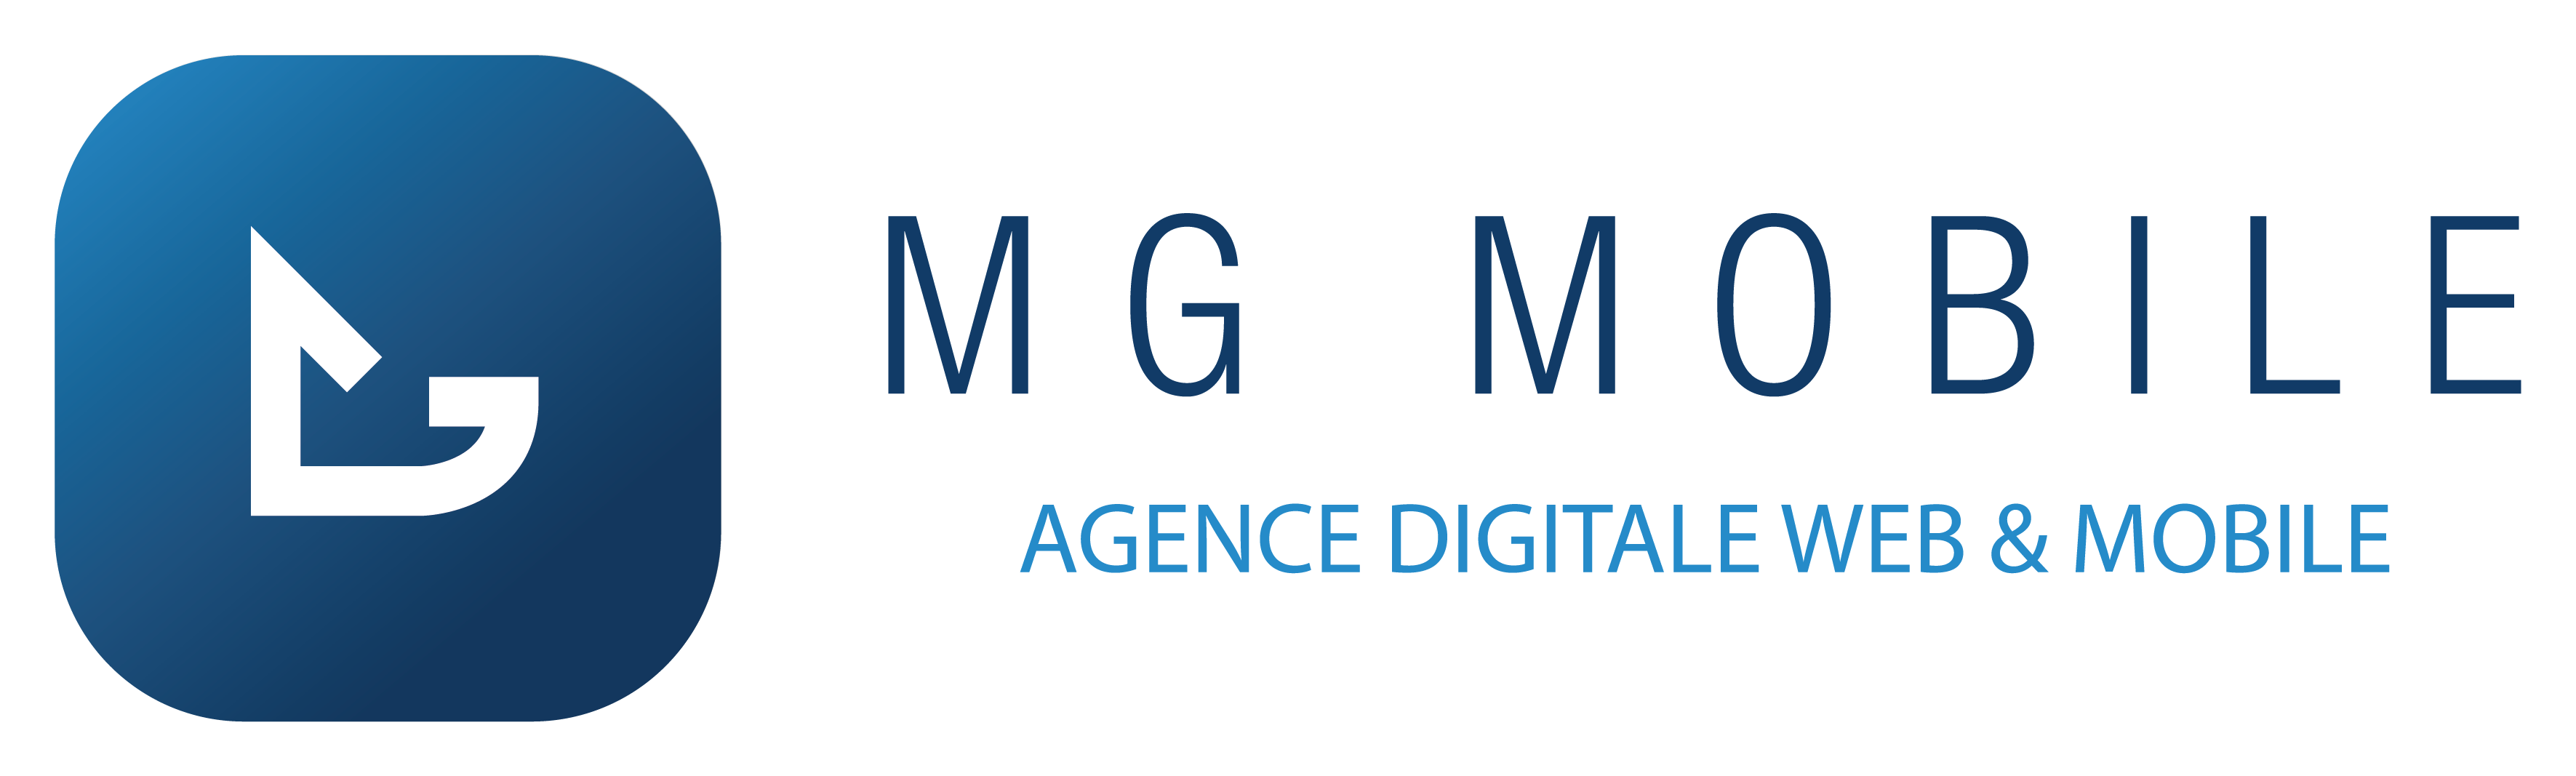 Logo Agence MG Mobile à Paris